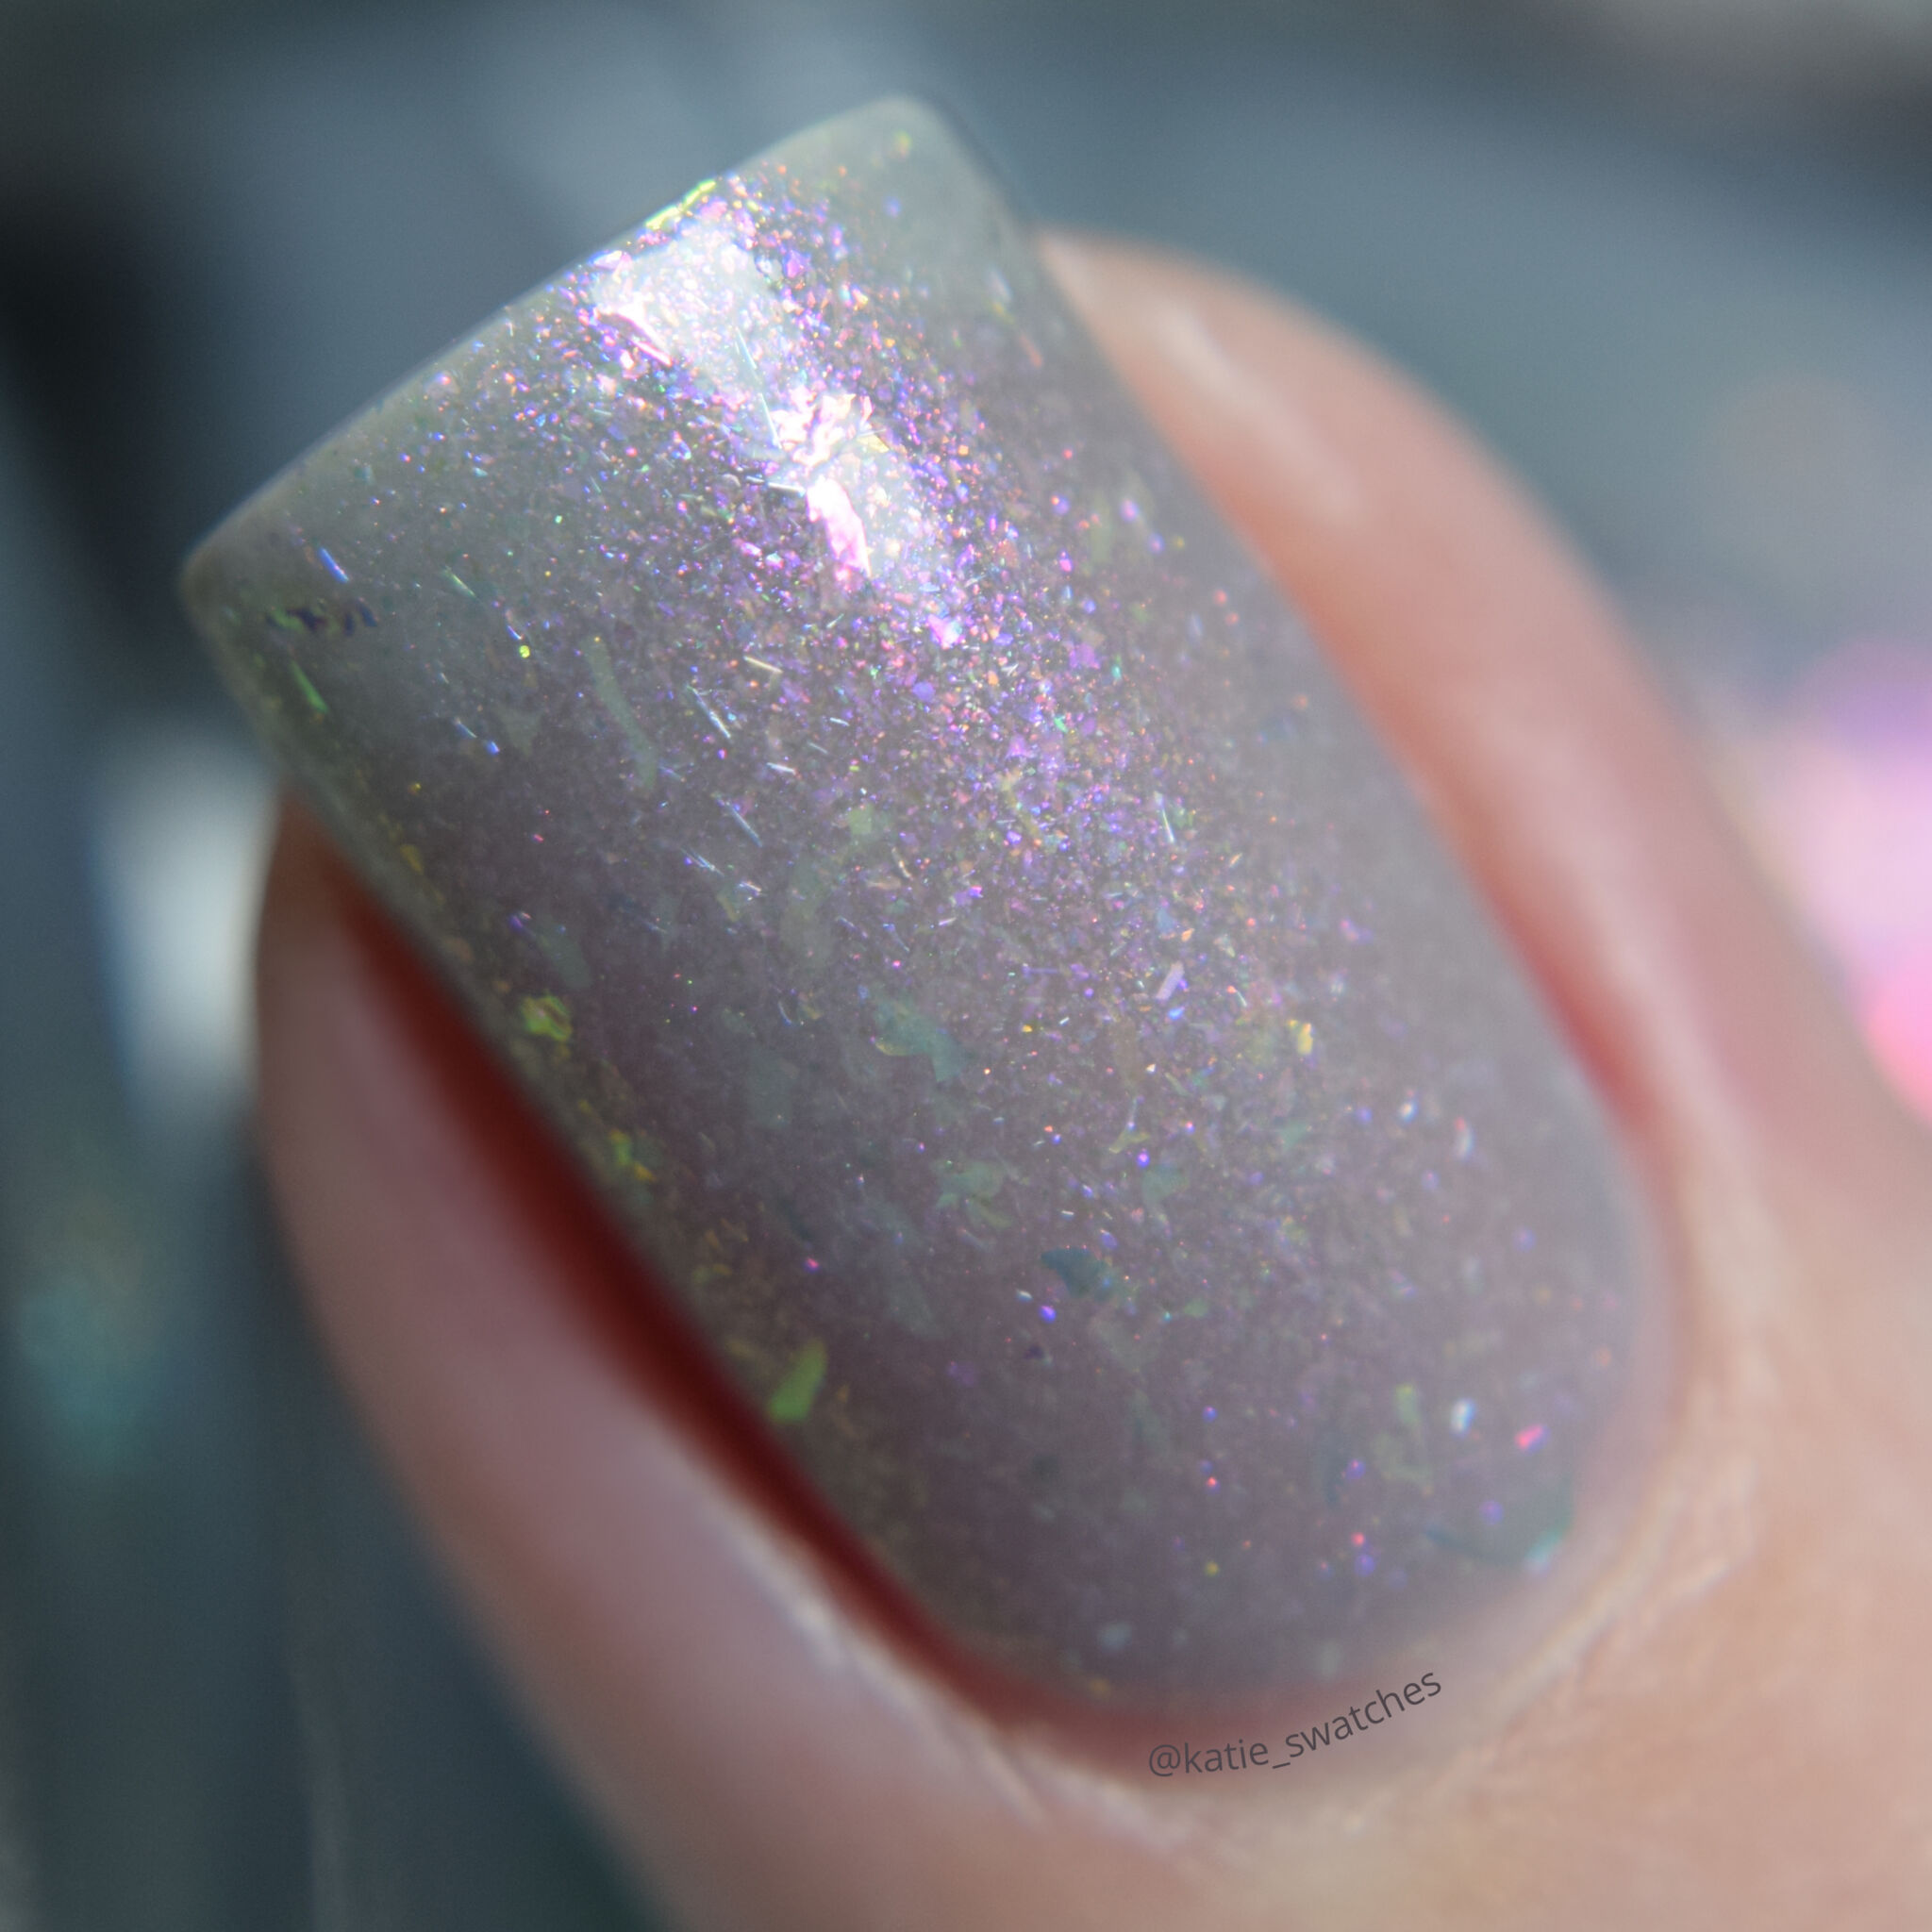 Girly Bits - Thistle While You Work sheer shimmer/flakie nail polish swatch macro